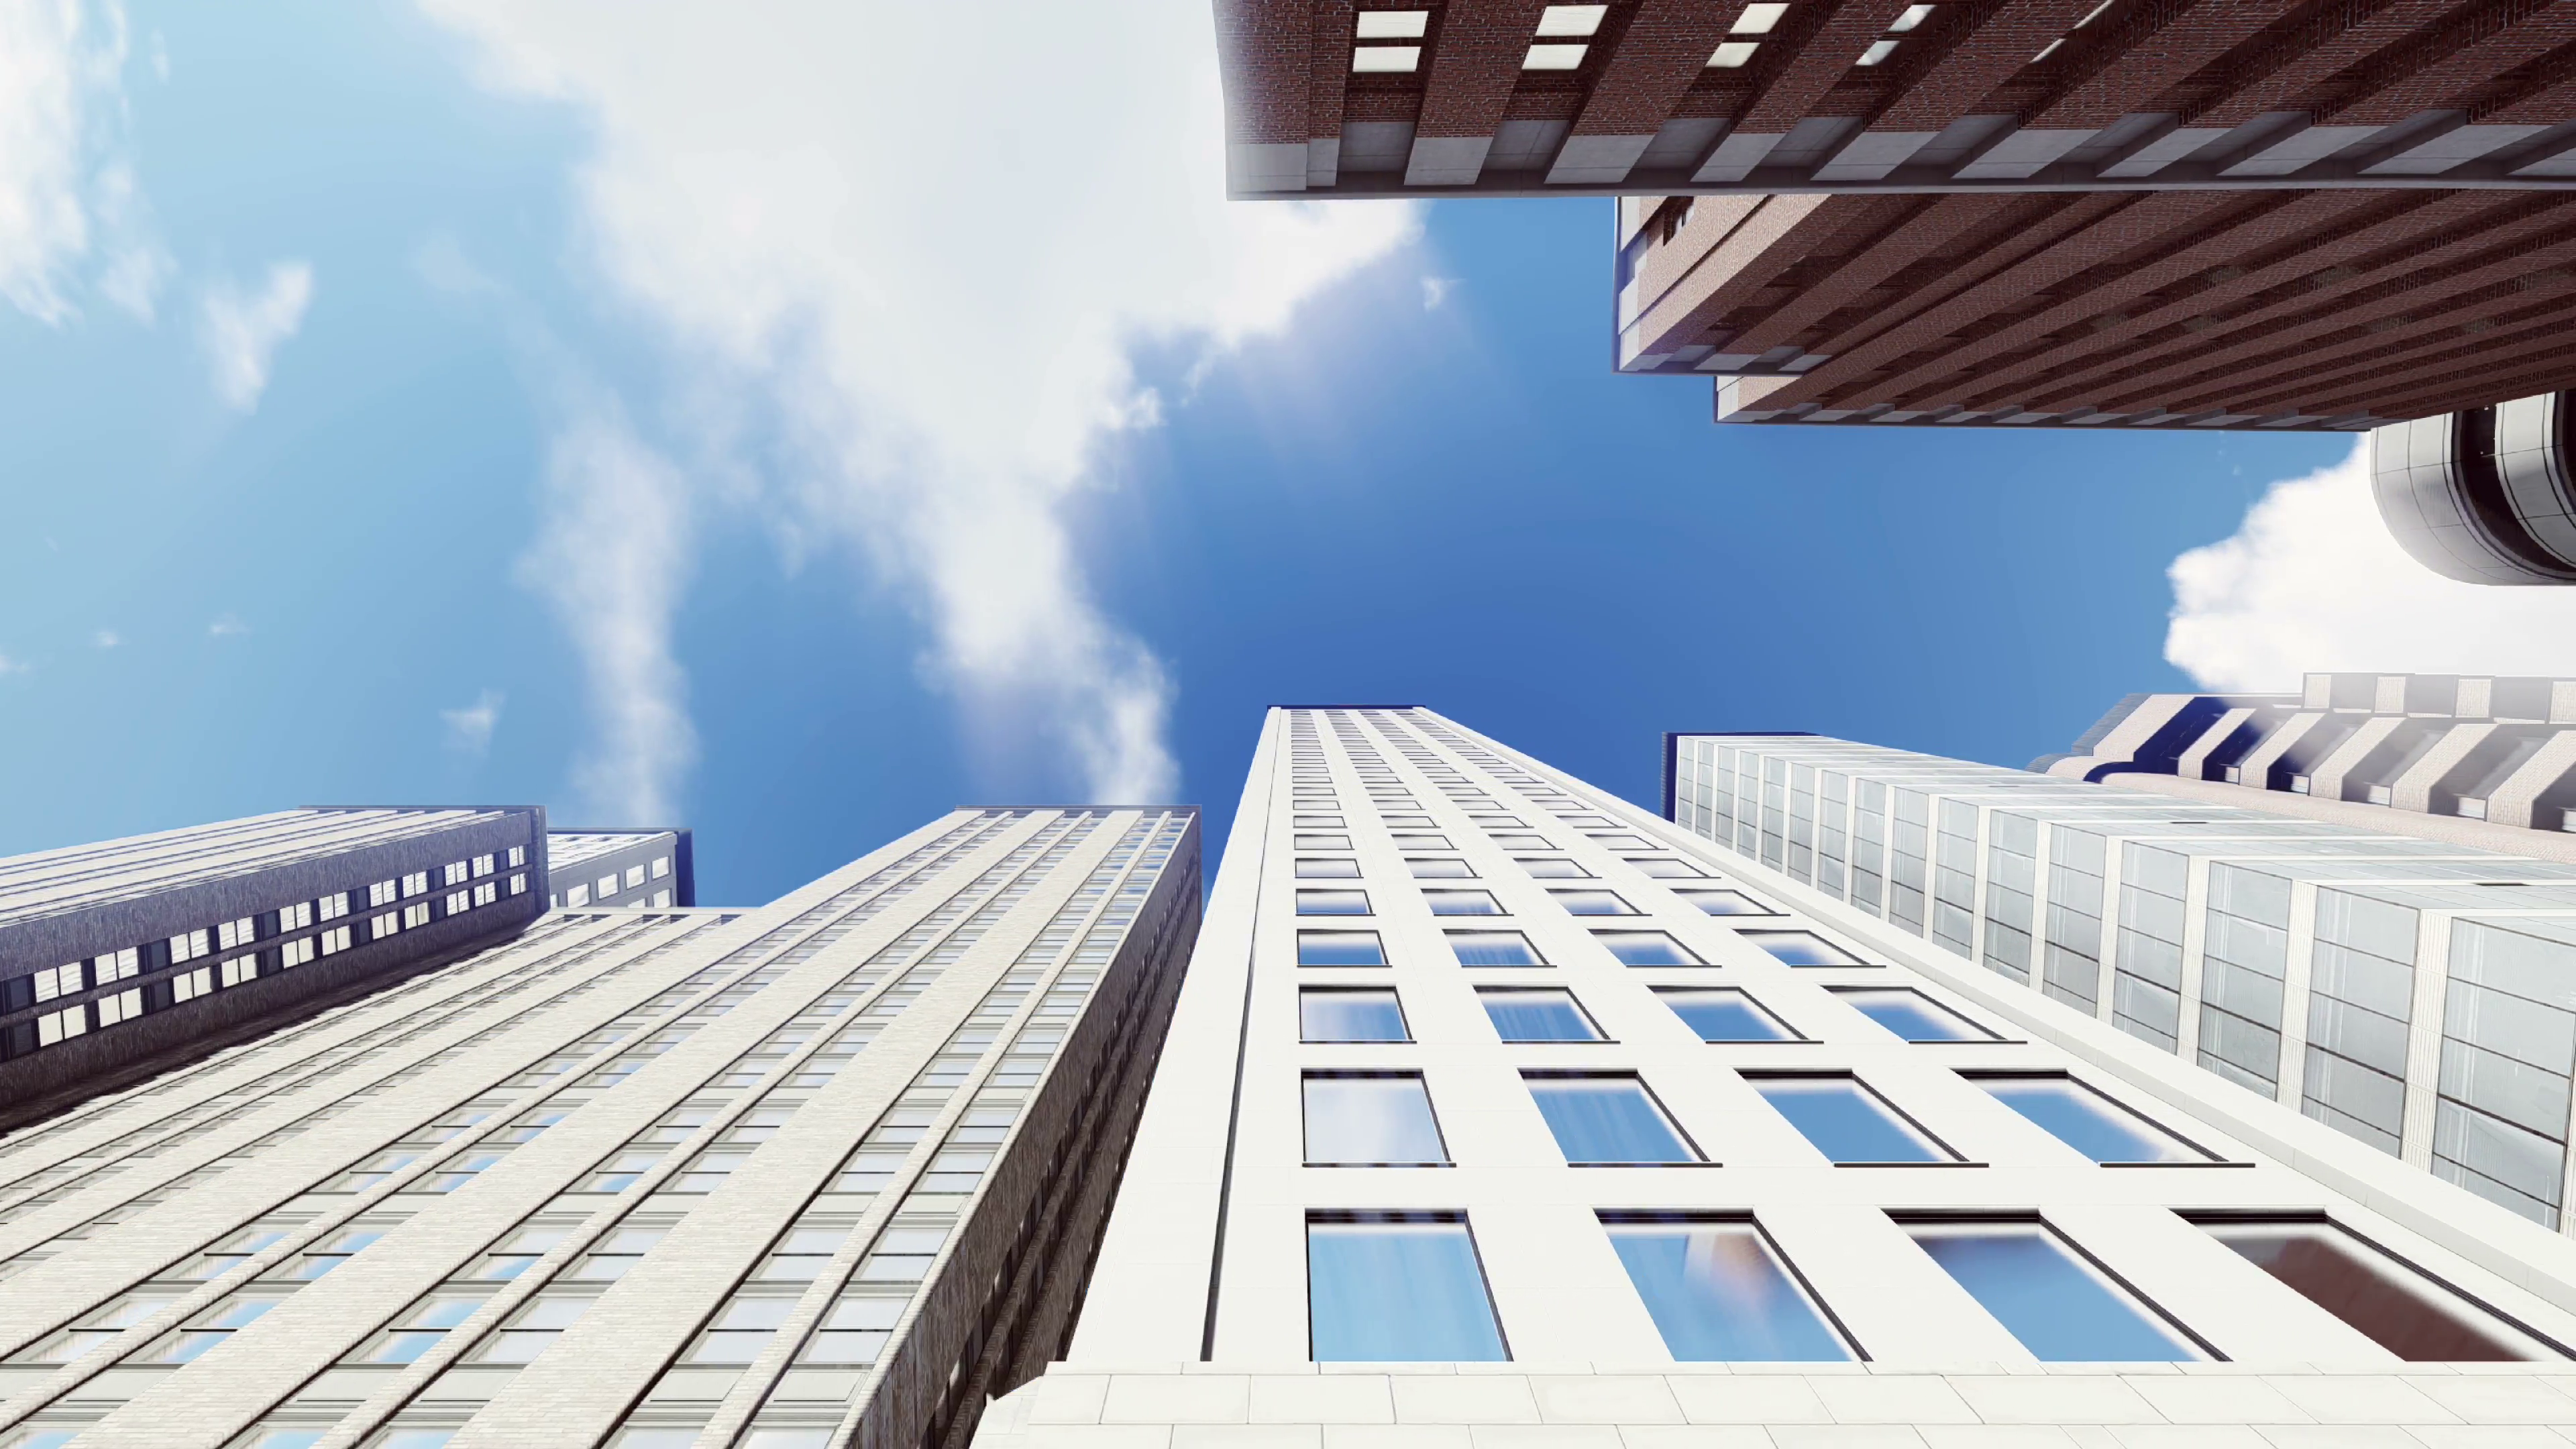 High rise office buildings from bottom up view against blue sky with ...